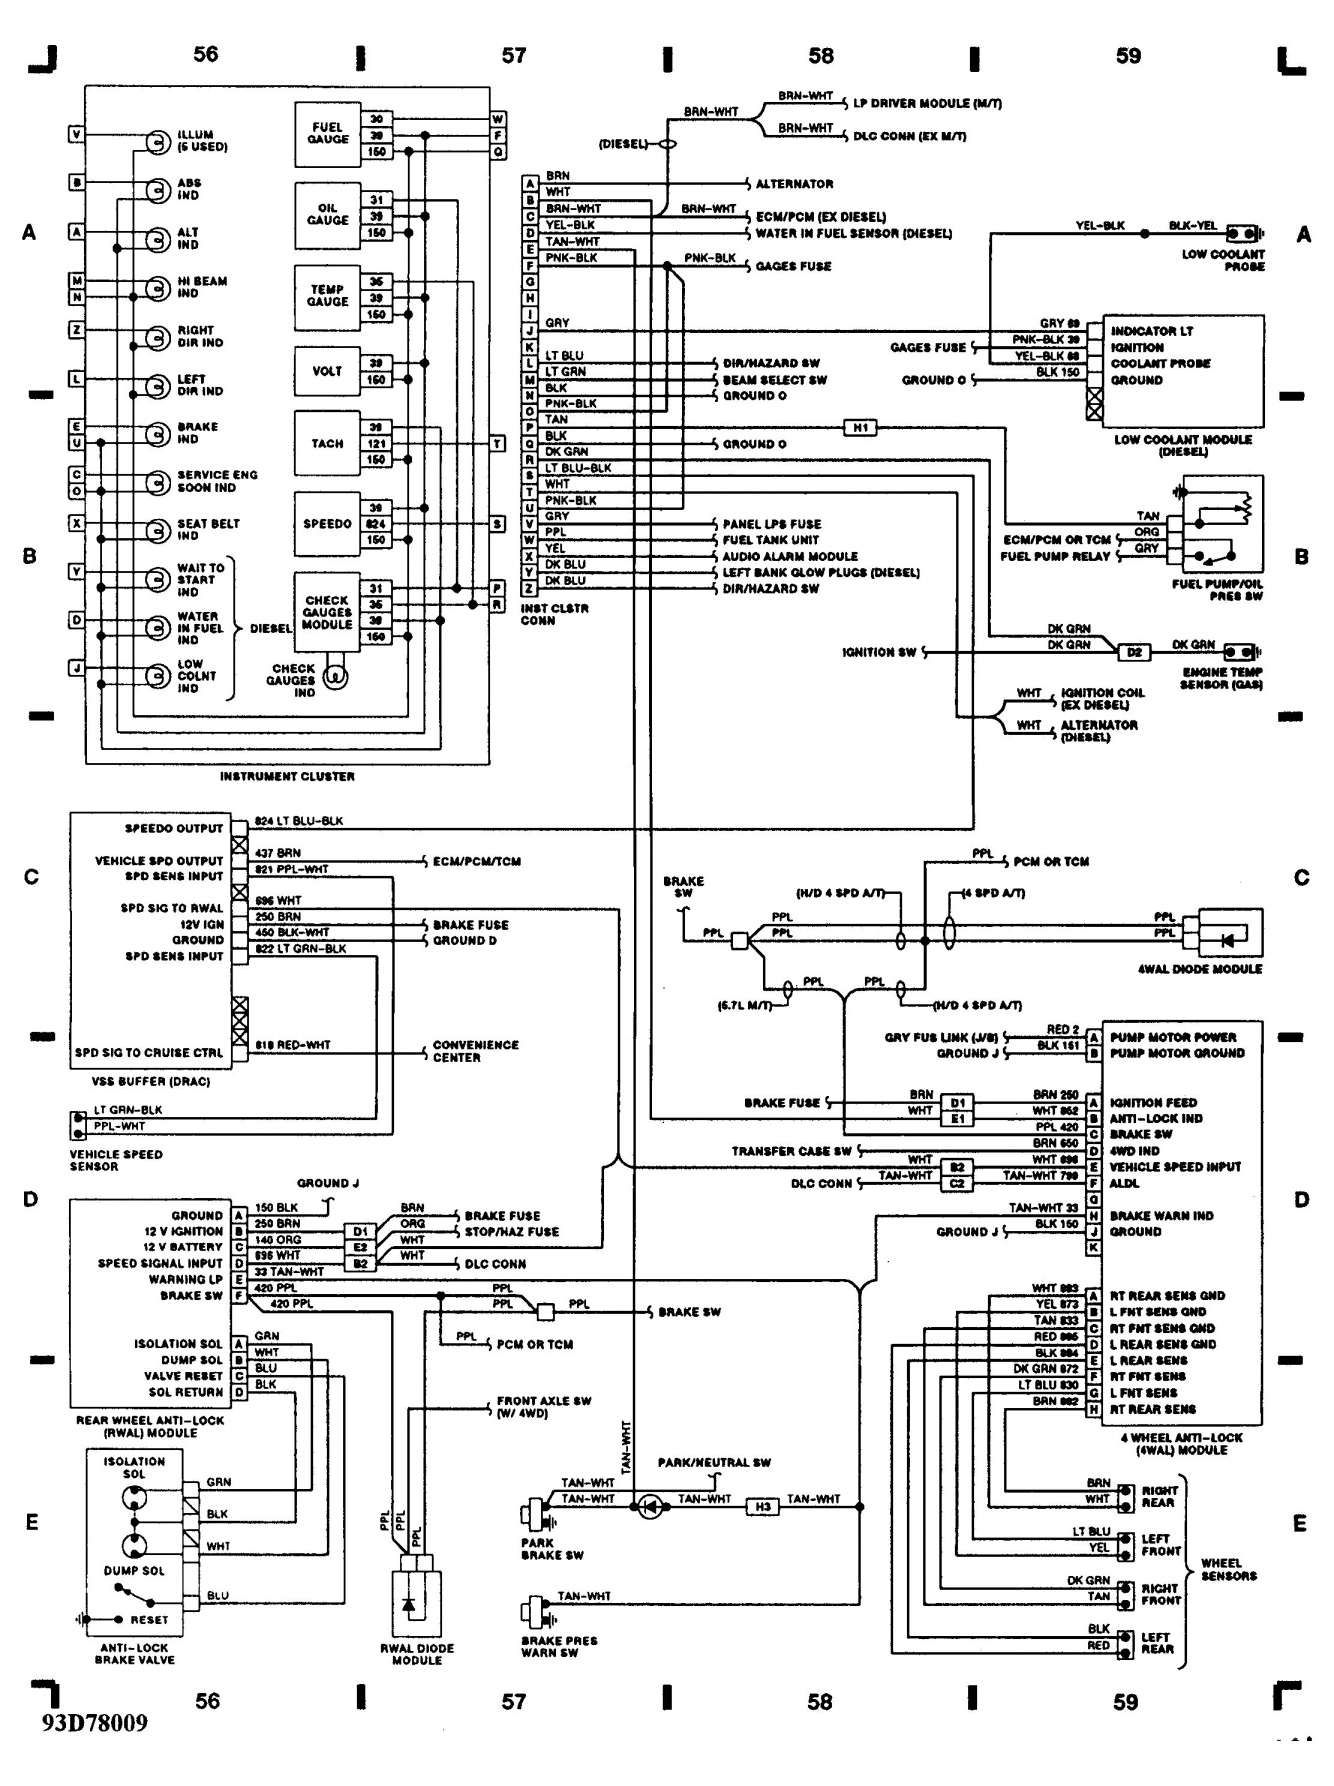 Chevy 305 Engine Wiring Diagram And Engine Wiring Harness Diagram Getting Started Of Chevy S10 Toyota Corolla Chevy Silverado